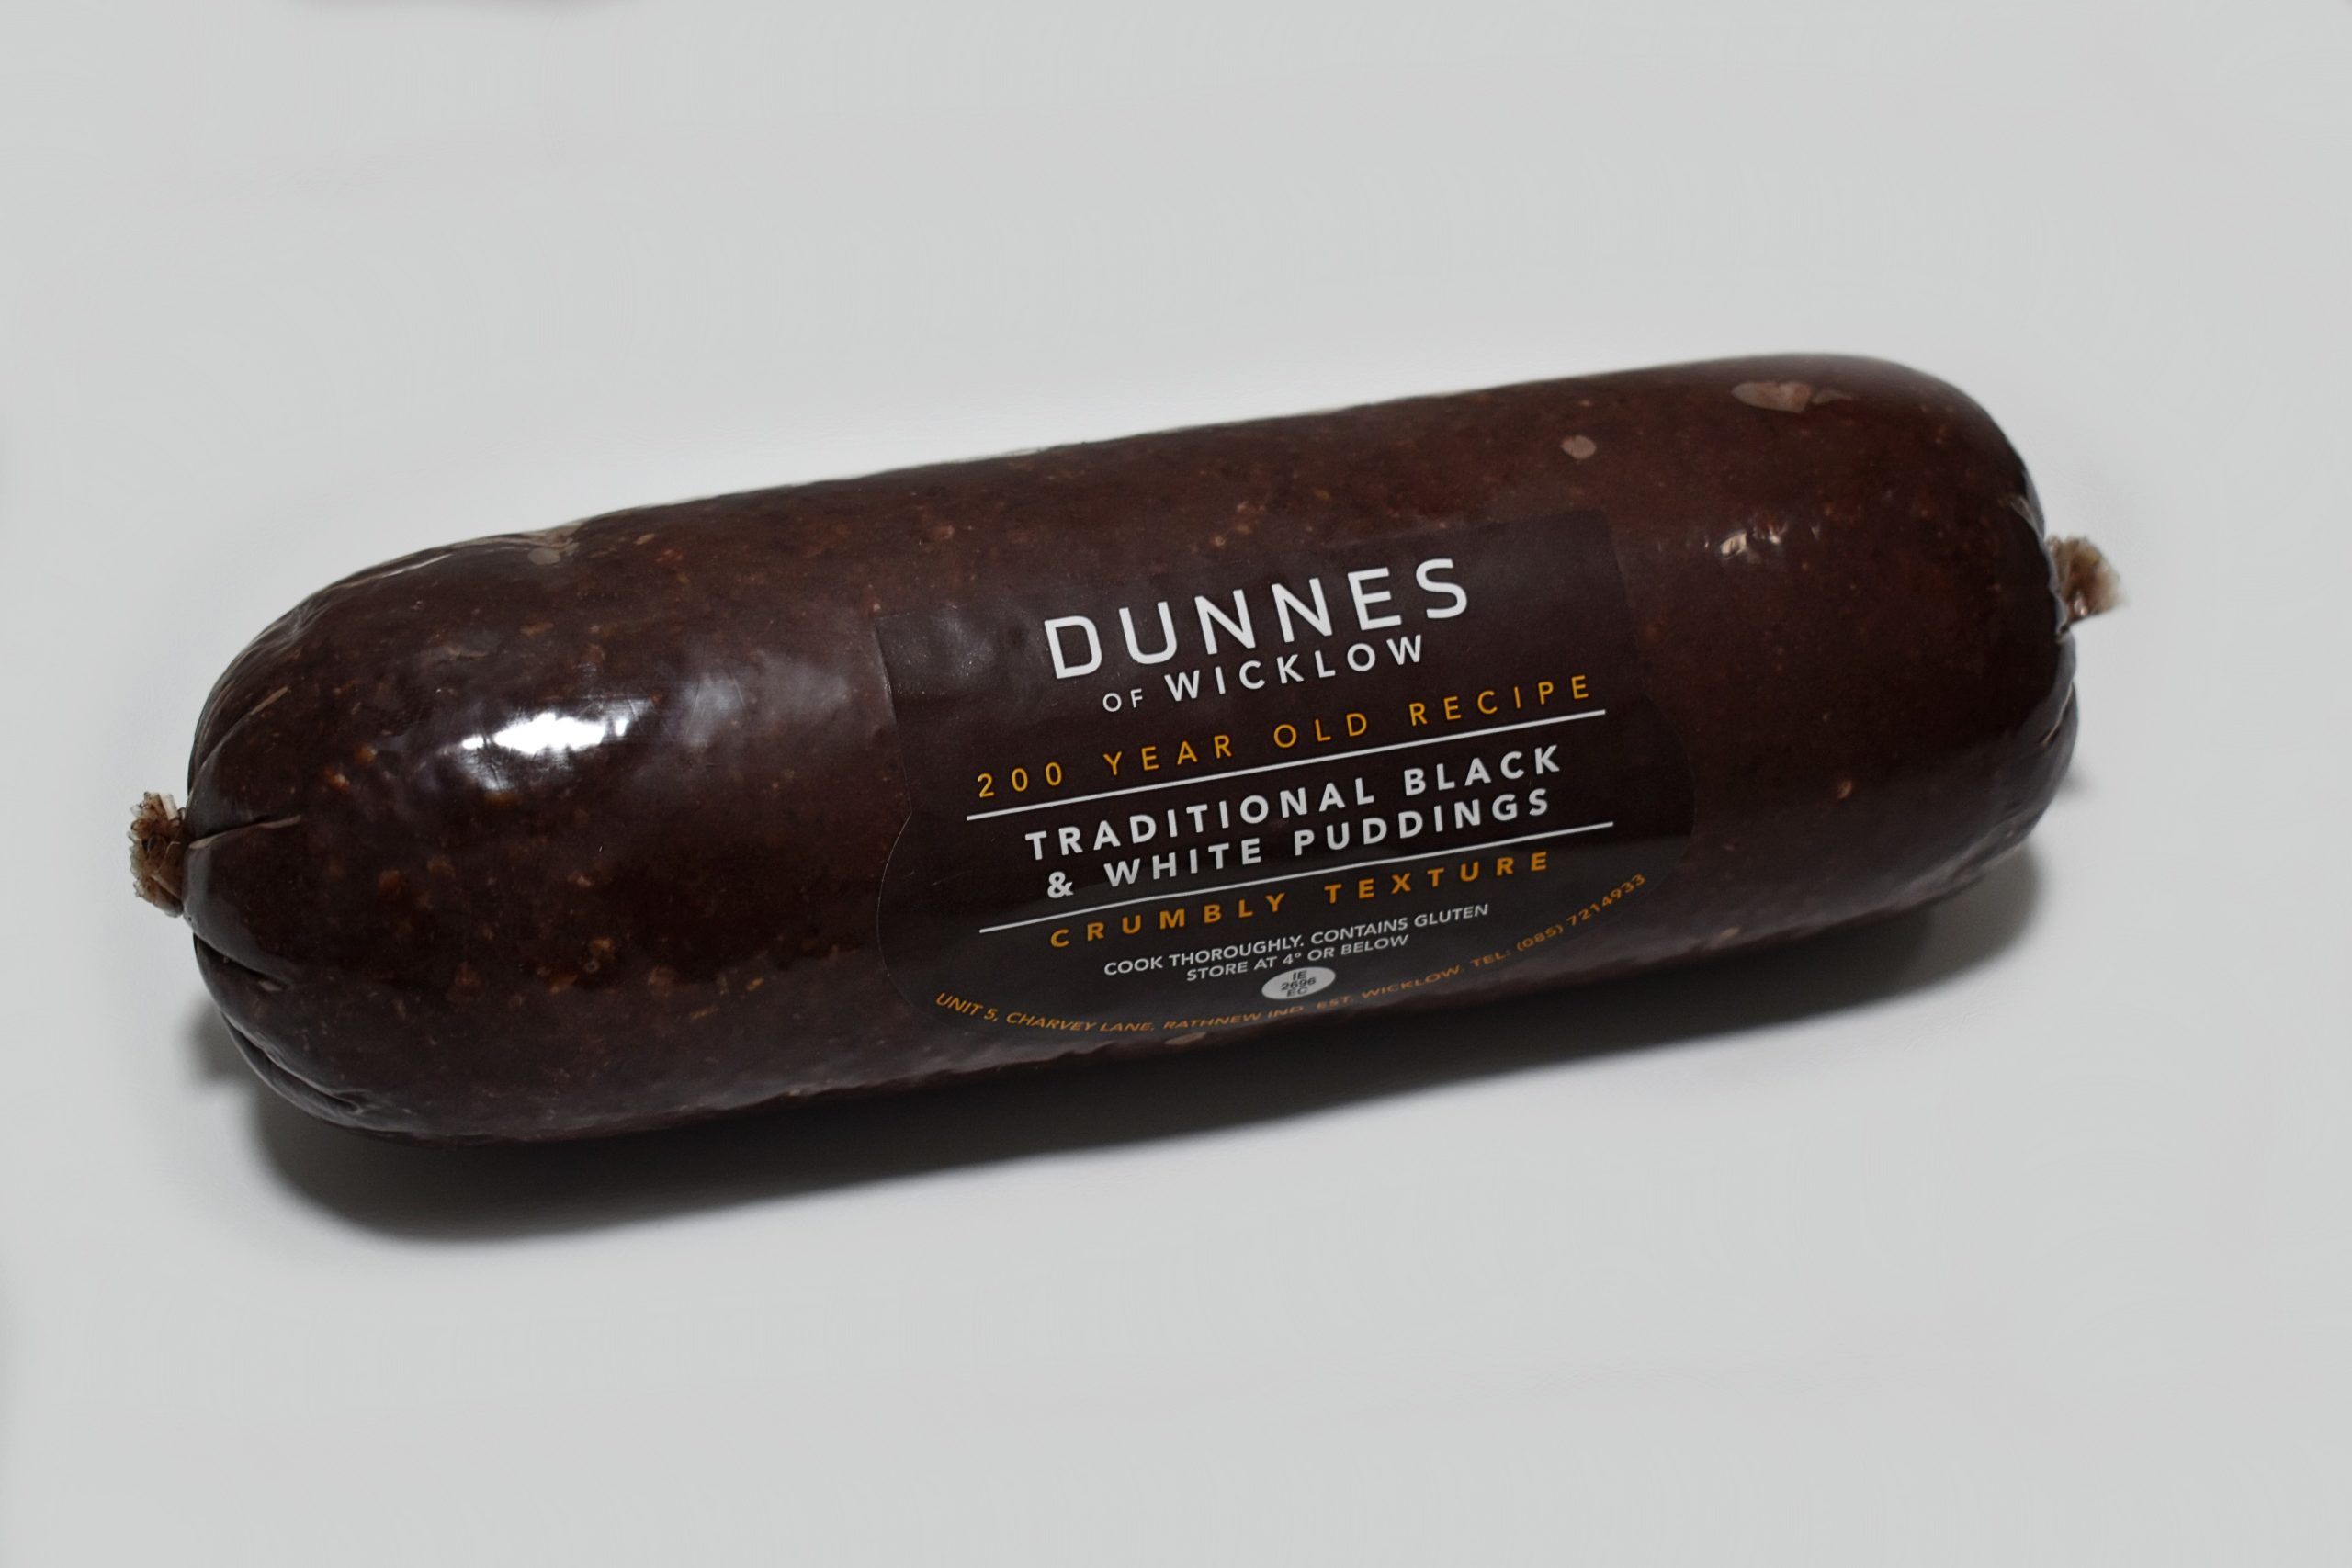 Dunnes of Wicklow - a County Wicklow food producer and member of Wicklow Naturally